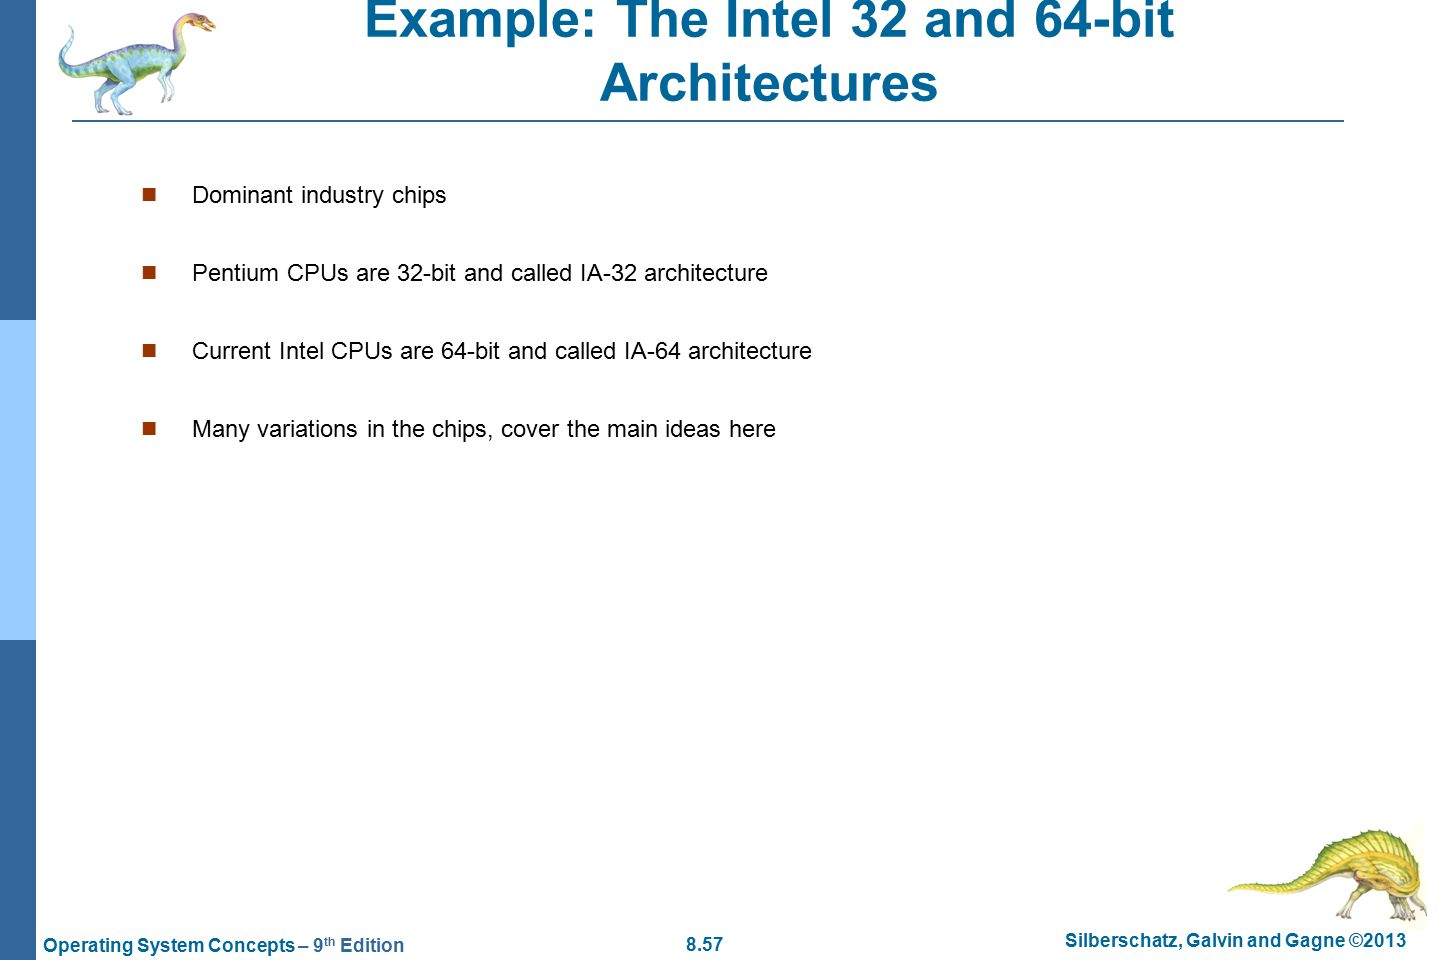 8.57 Silberschatz, Galvin and Gagne ©2013 Operating System Concepts – 9 th Edition Example: The Intel 32 and 64-bit Architectures Dominant industry chips Pentium CPUs are 32-bit and called IA-32 architecture Current Intel CPUs are 64-bit and called IA-64 architecture Many variations in the chips, cover the main ideas here